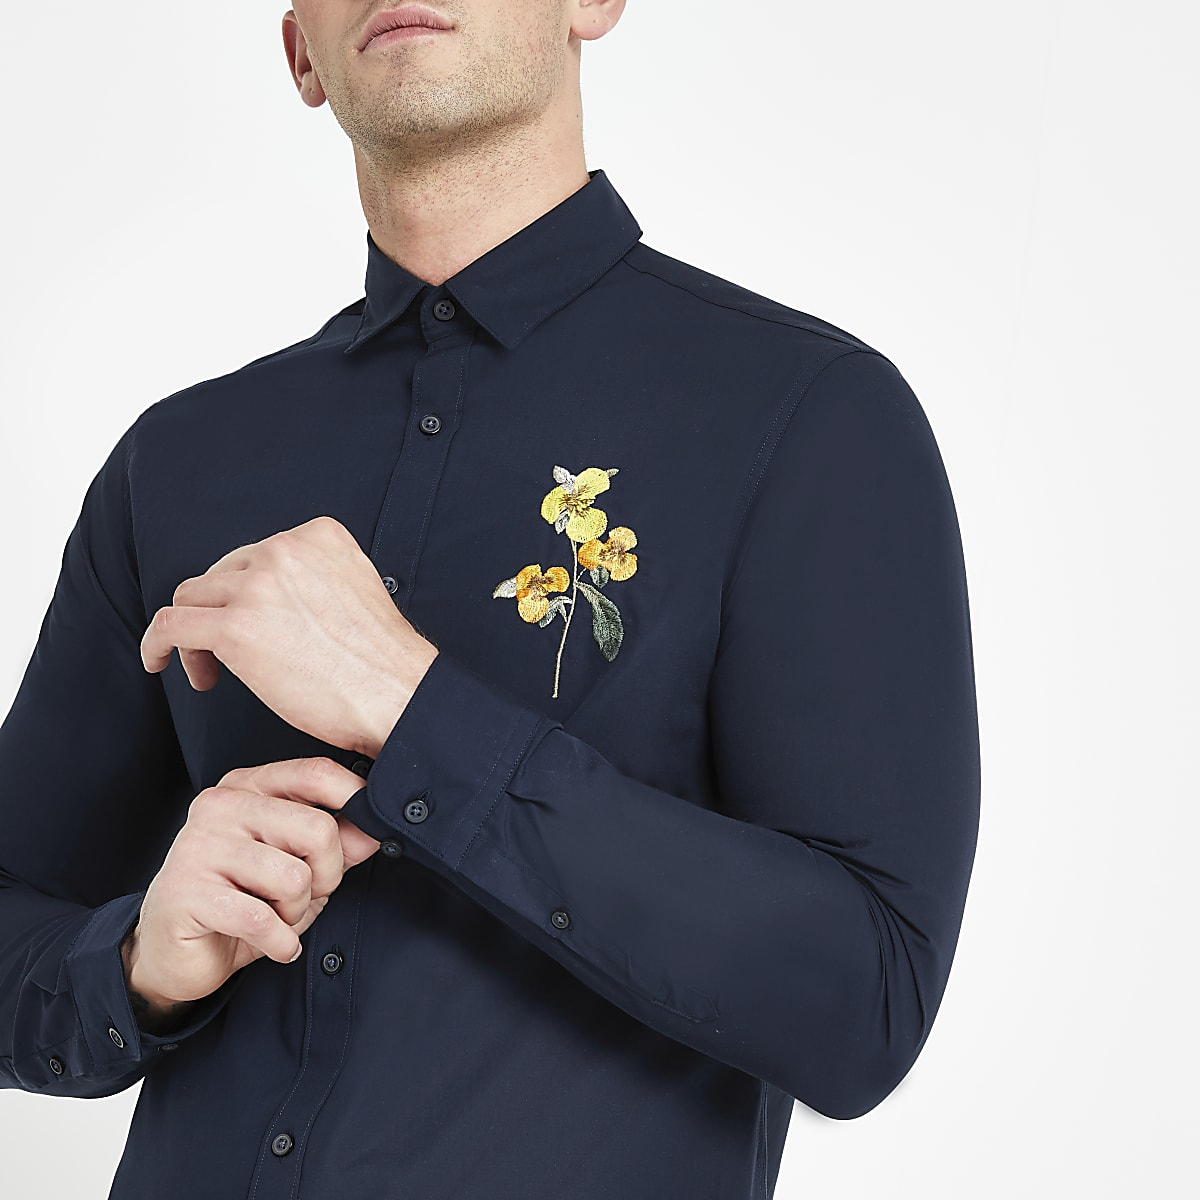 Selected Homme navy floral embroidered shirt